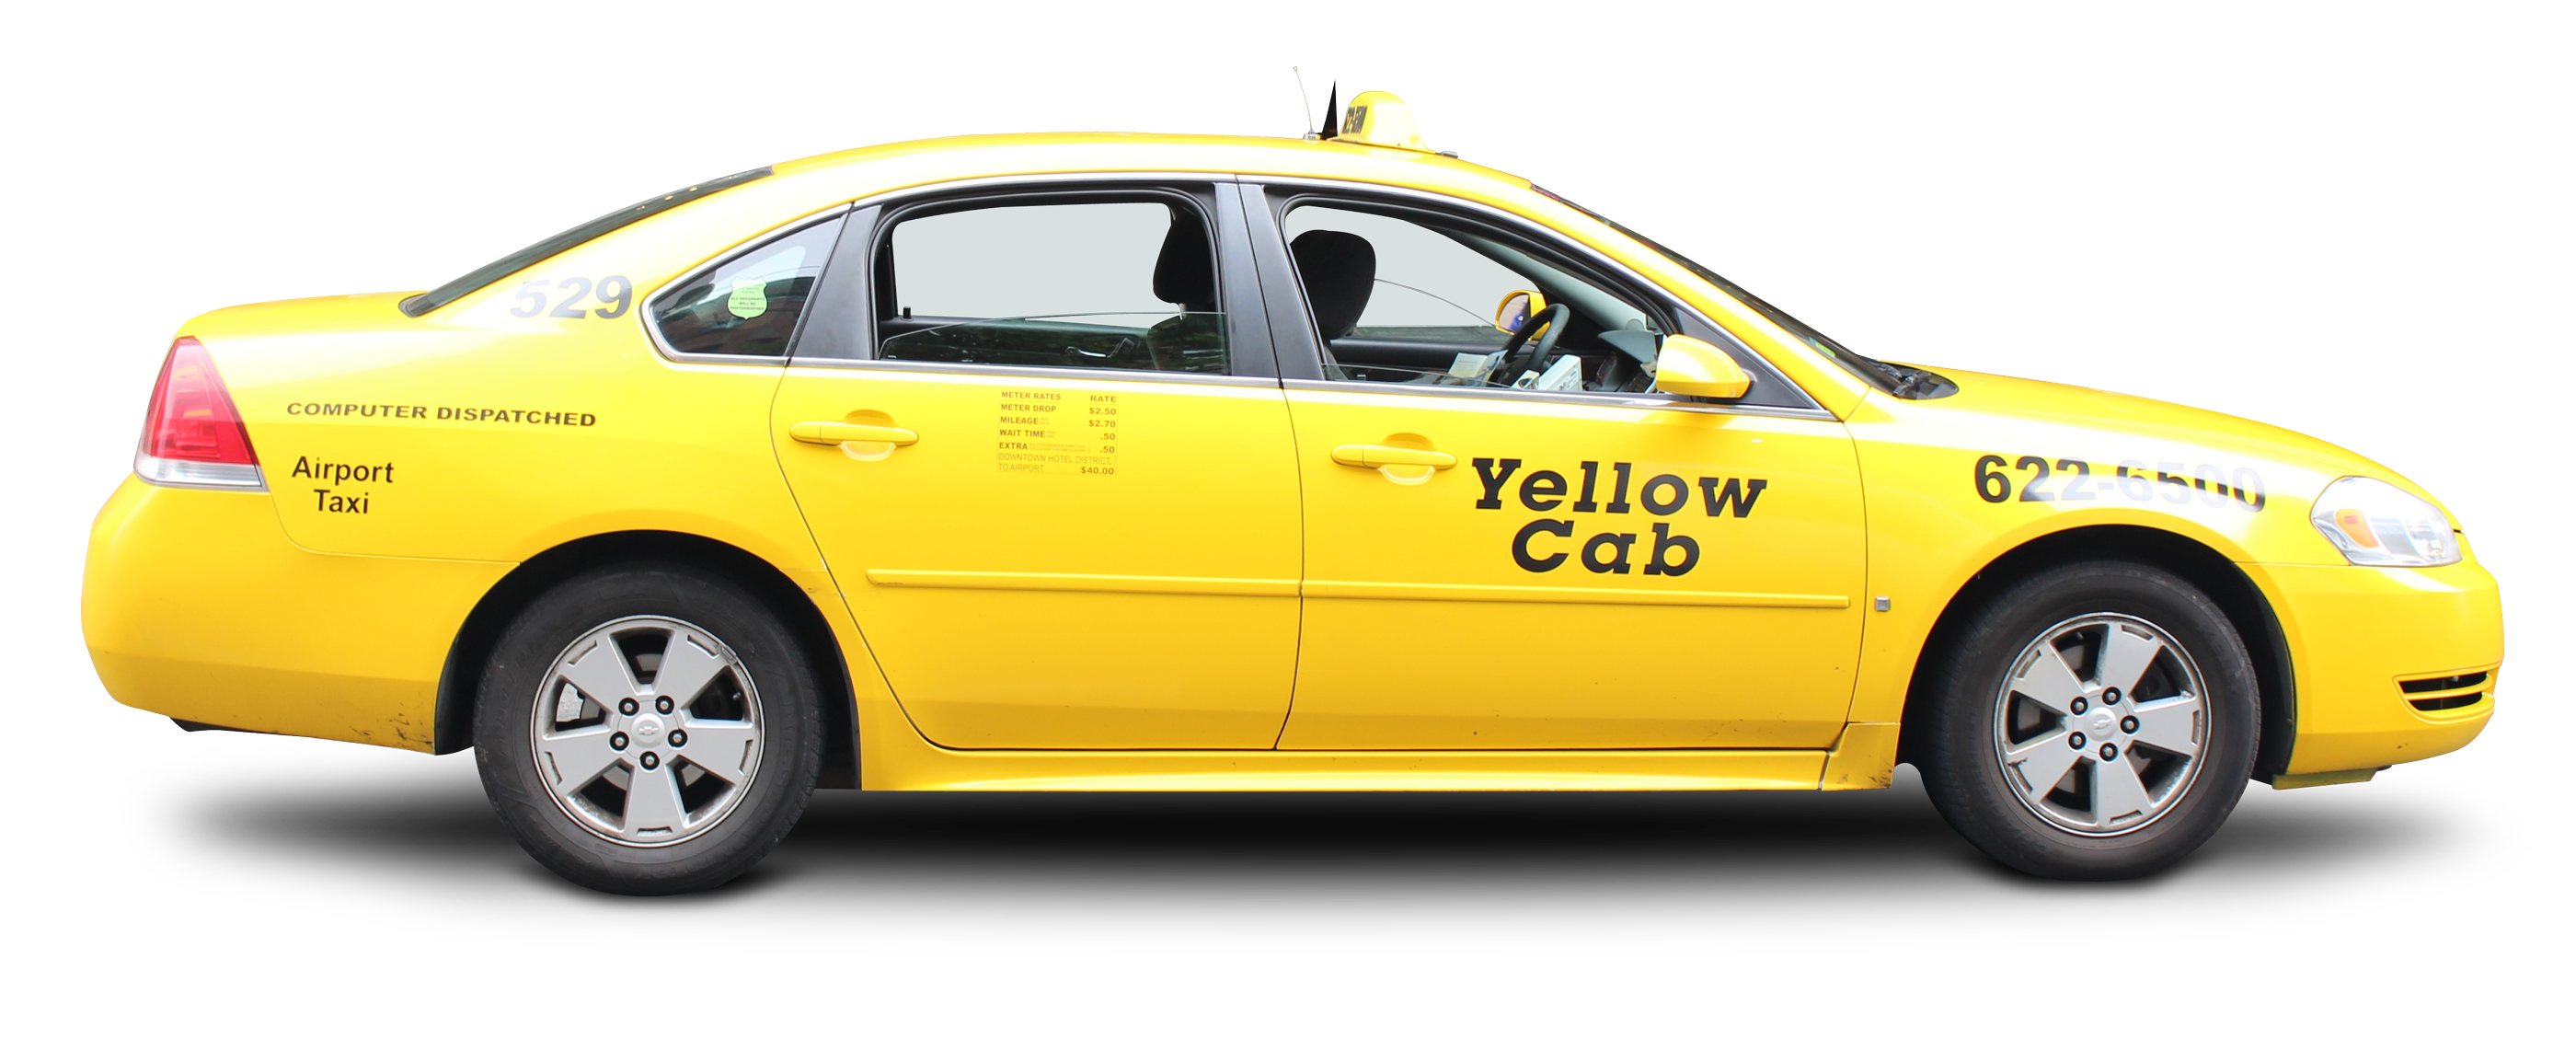 Download Taxi Cab PNG Image